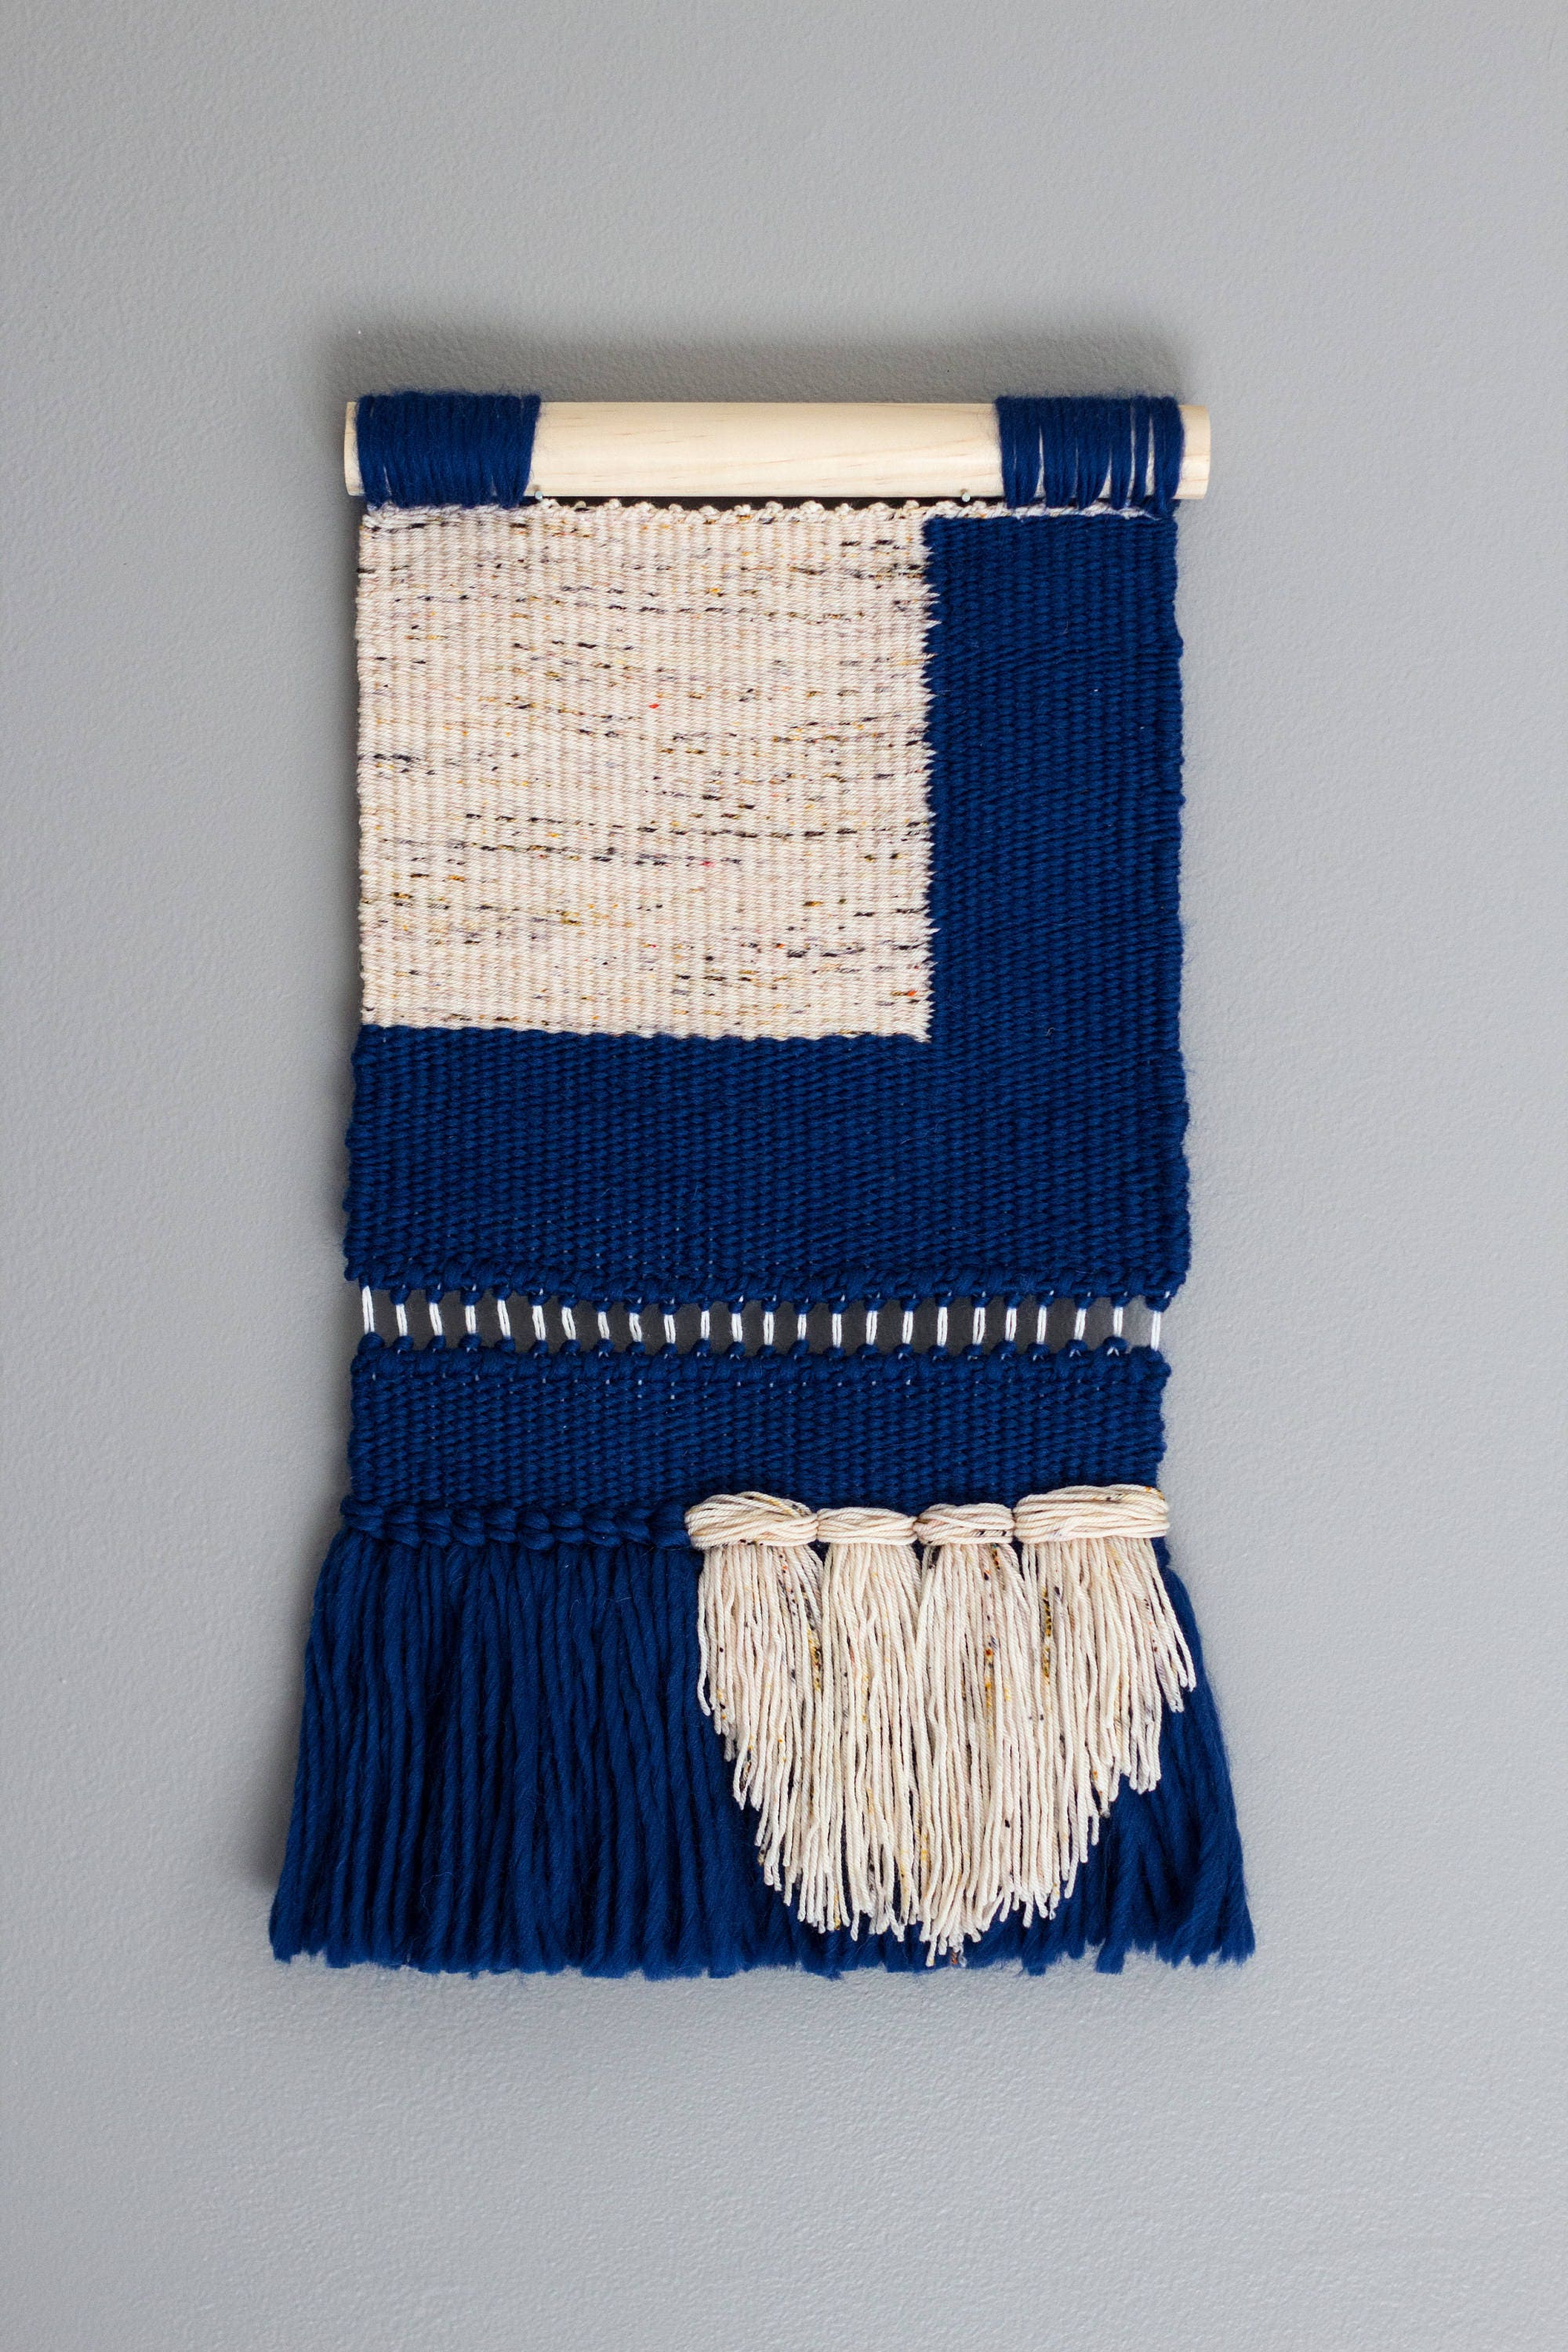 Woven Wall Hanging Modern Tapestry Blue Color Block